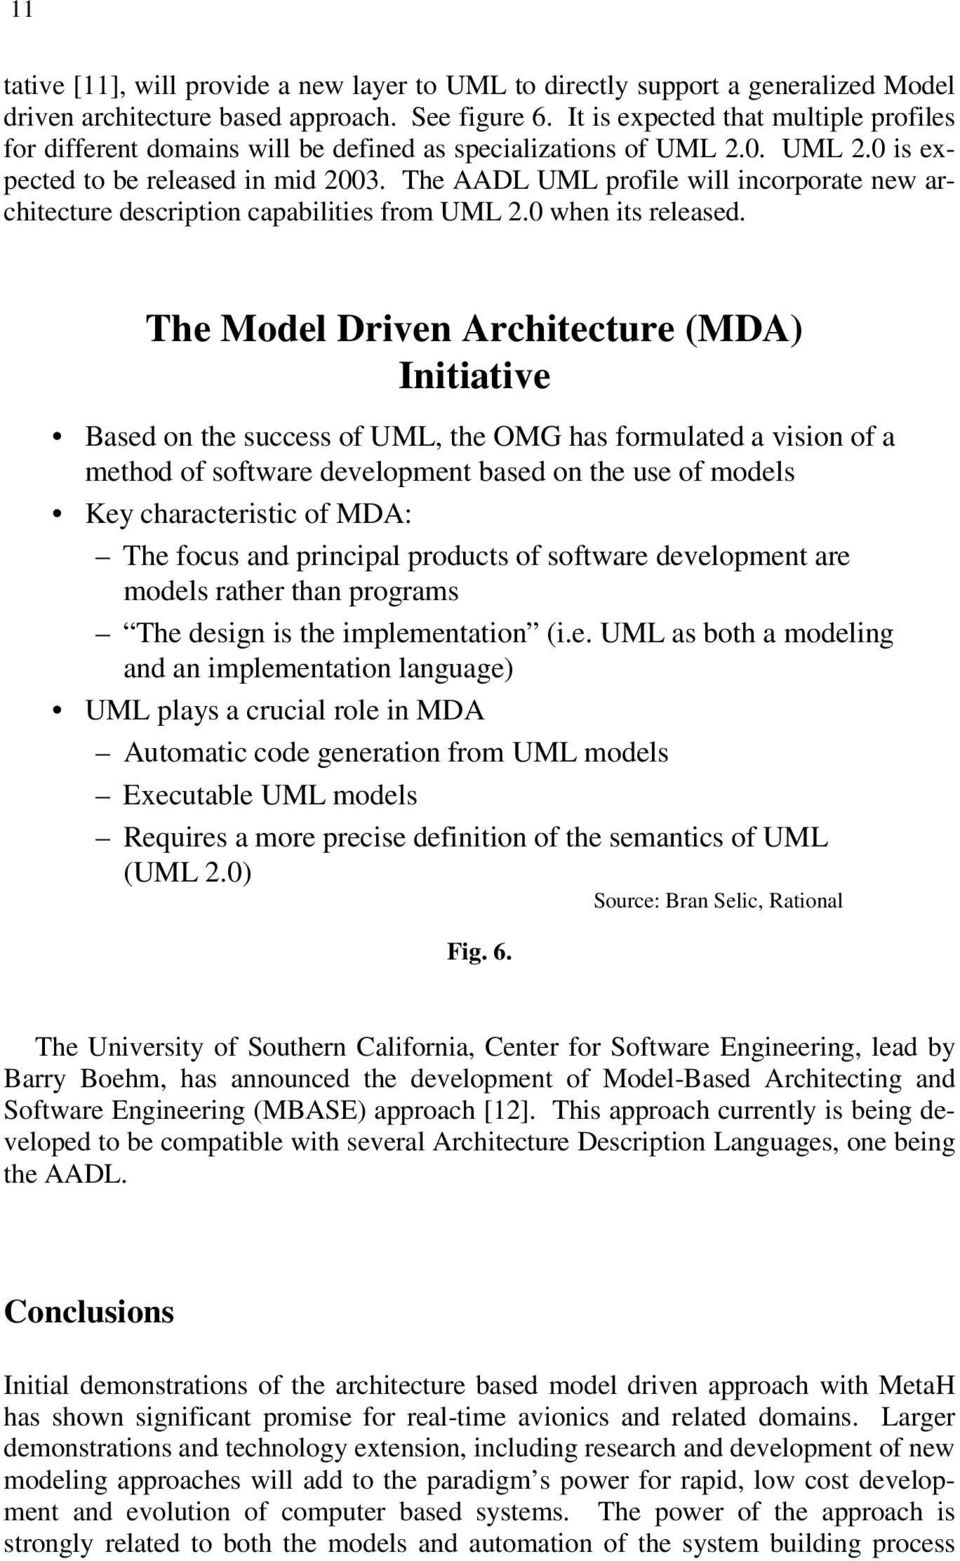 The AADL UML profile will incorporate new architecture description capabilities from UML 2.0 when its released.